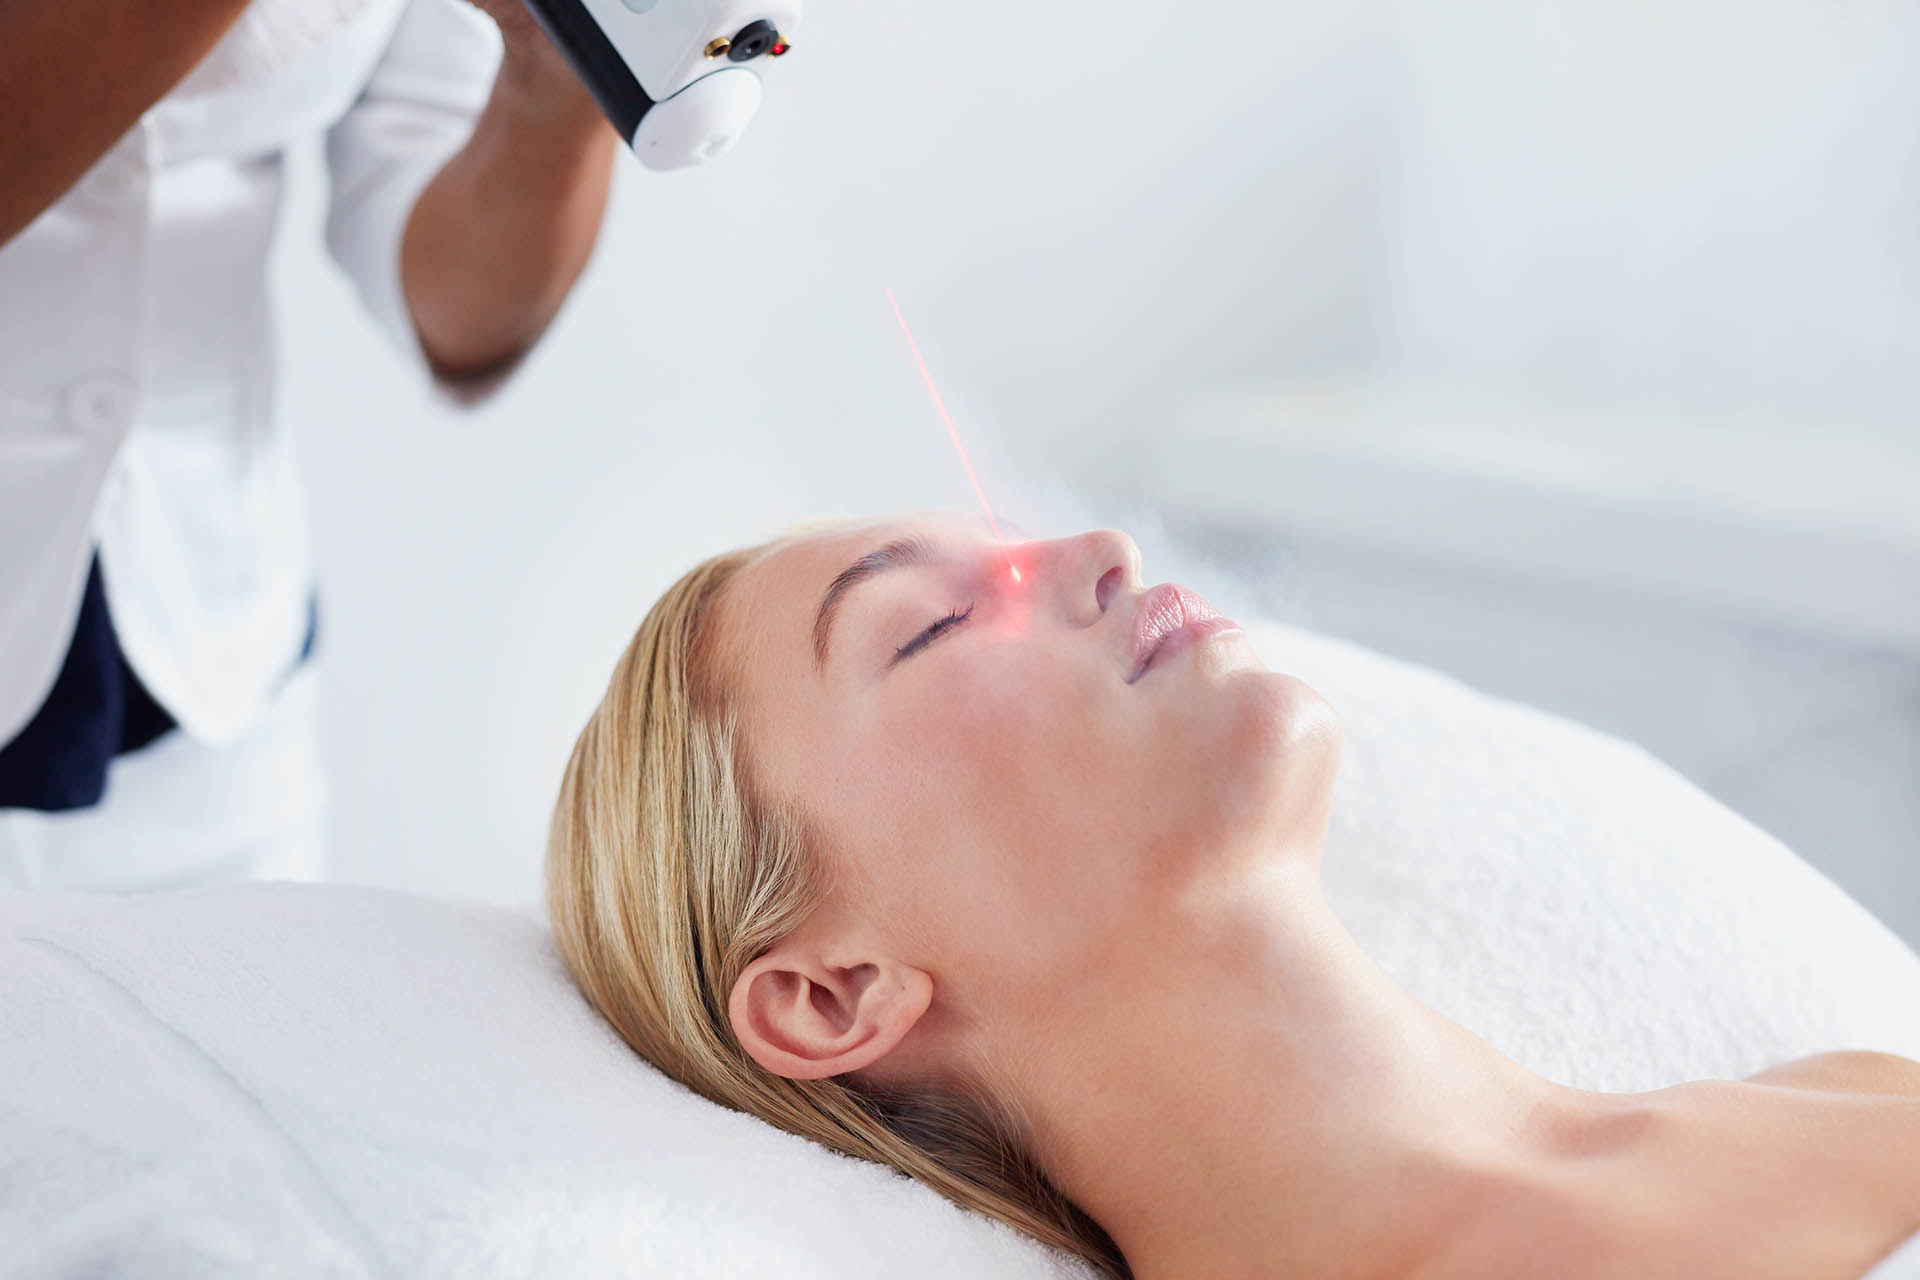 Laser Light South Perth Specialist Skin Cancer Centre